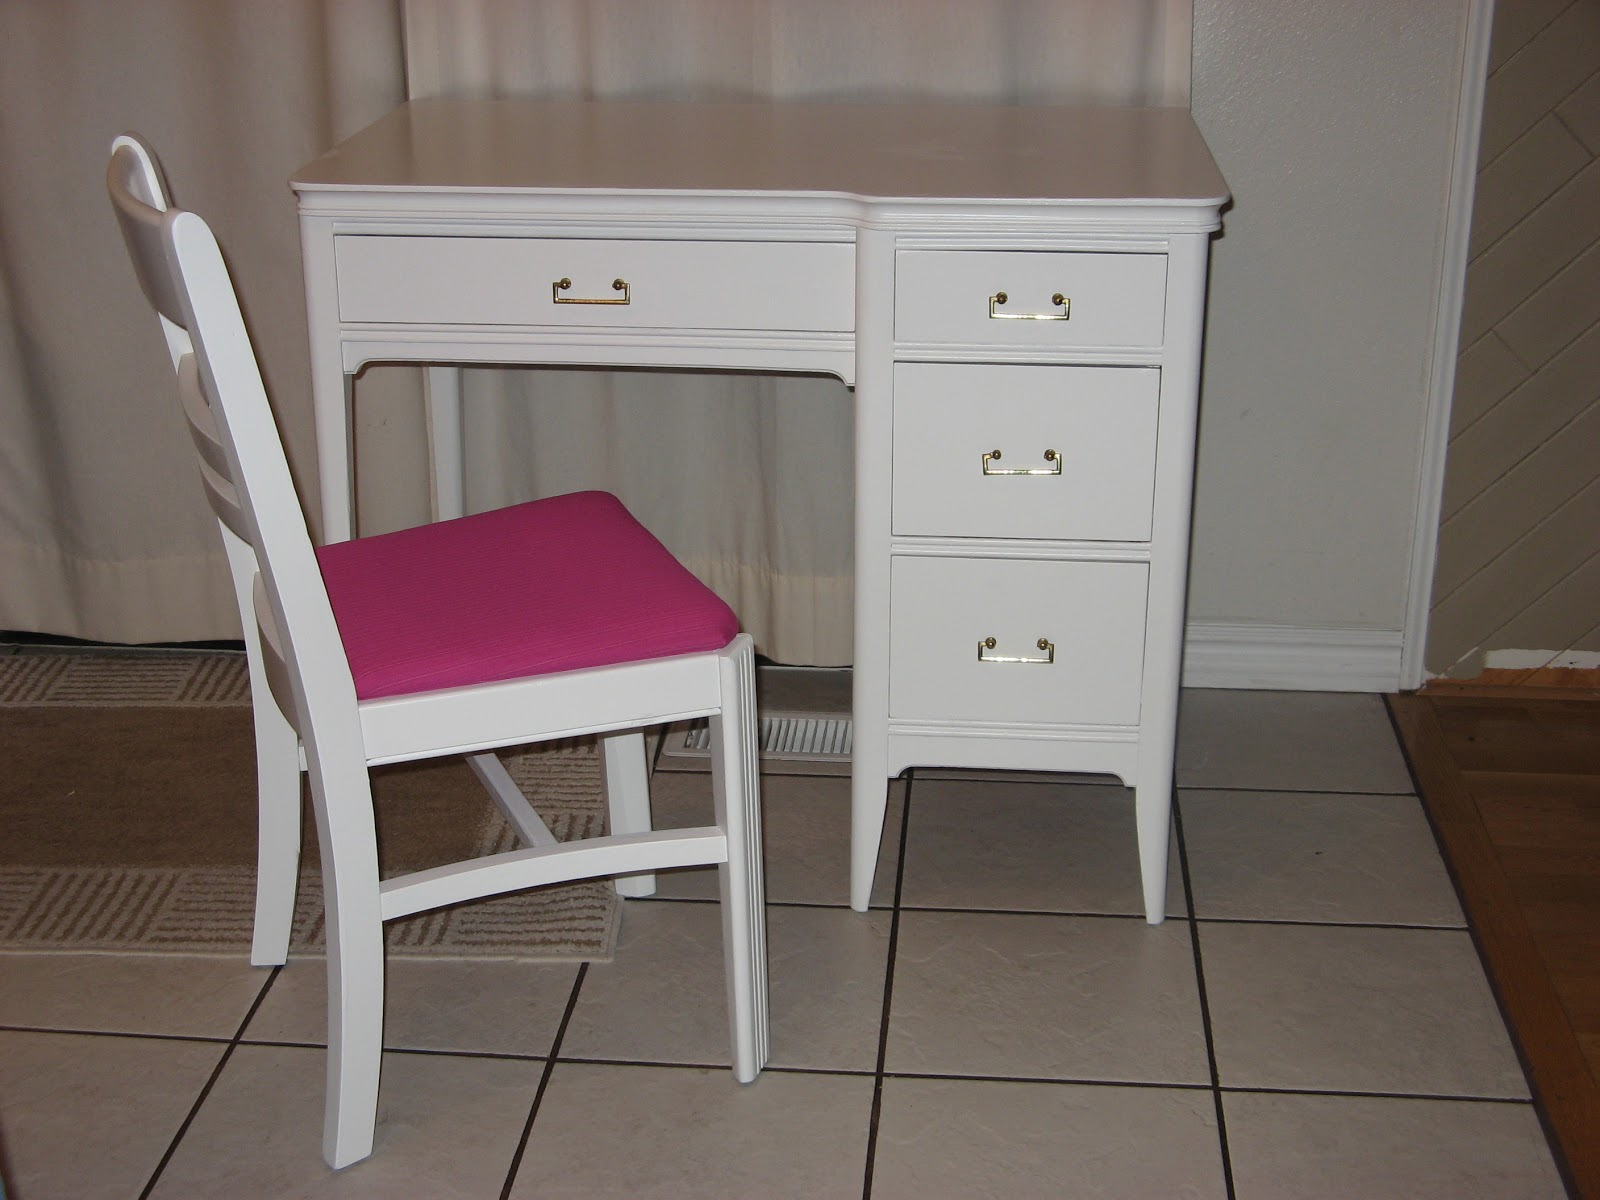 Max Refinished Into This Sweet Little S Desk For Hailey